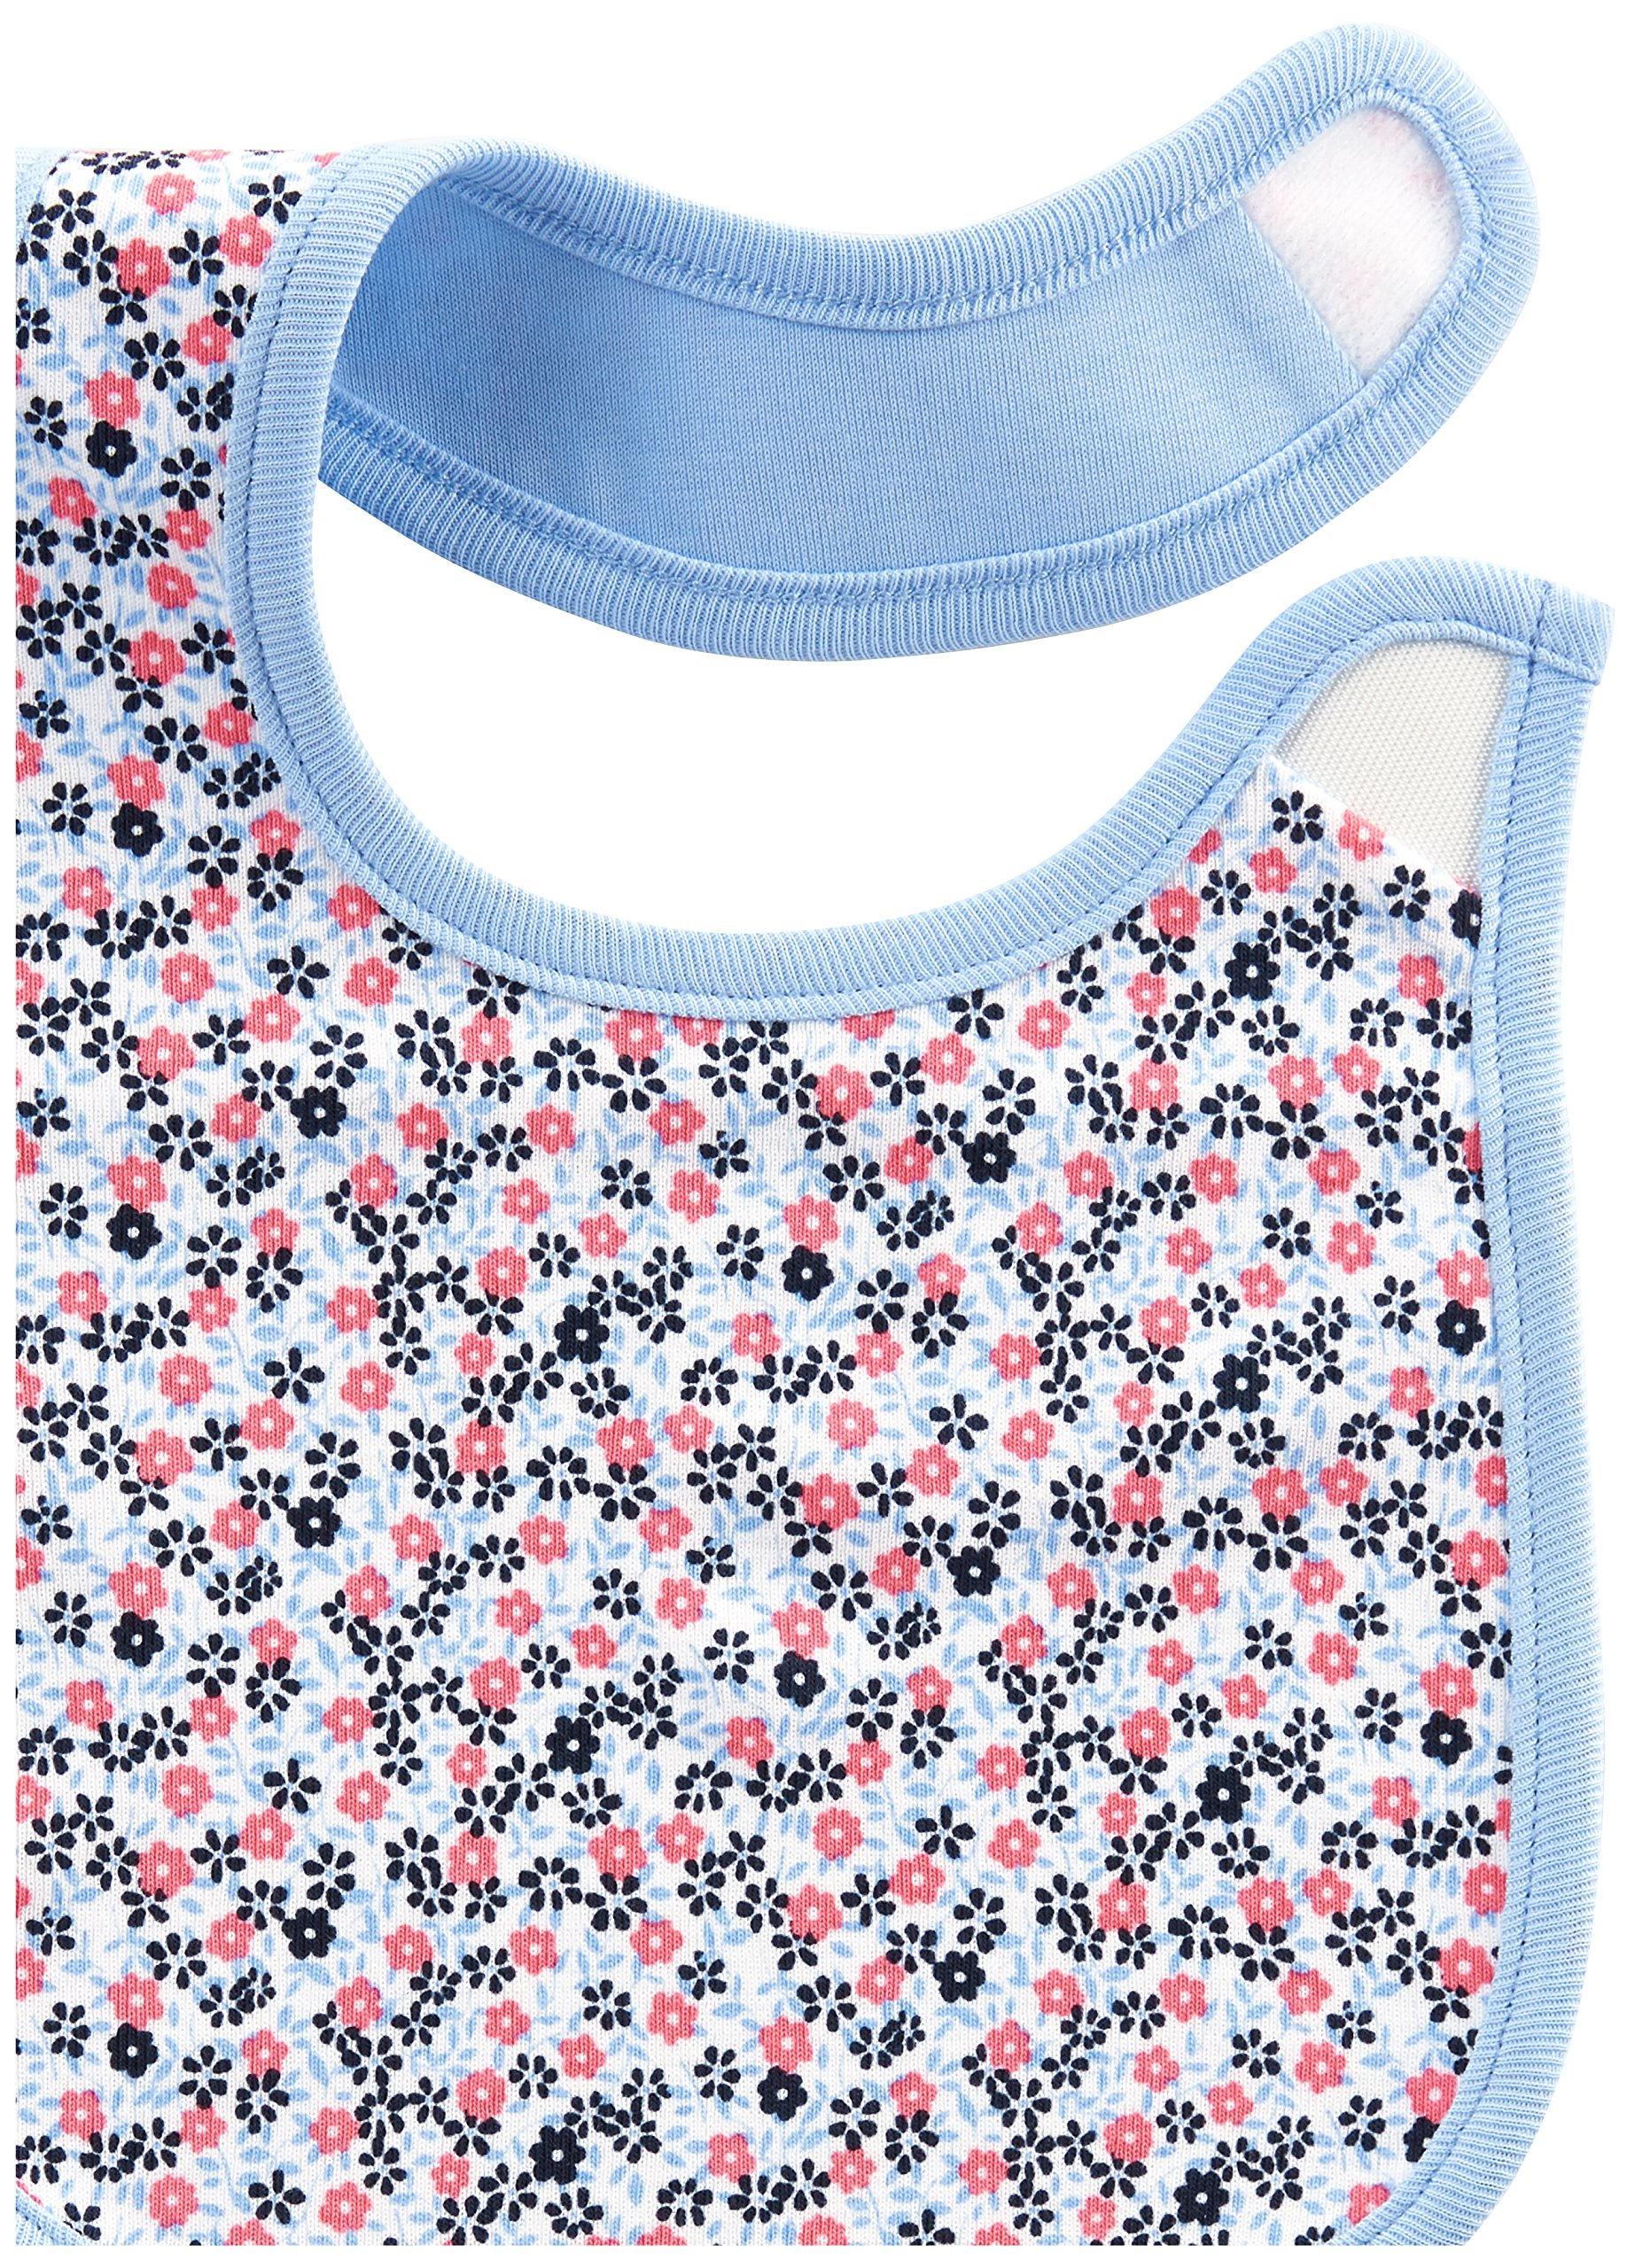 Carter's Baby Girls' 15-Piece Basic Essentials Set, Floral 6 Months by Carter's (Image #2)